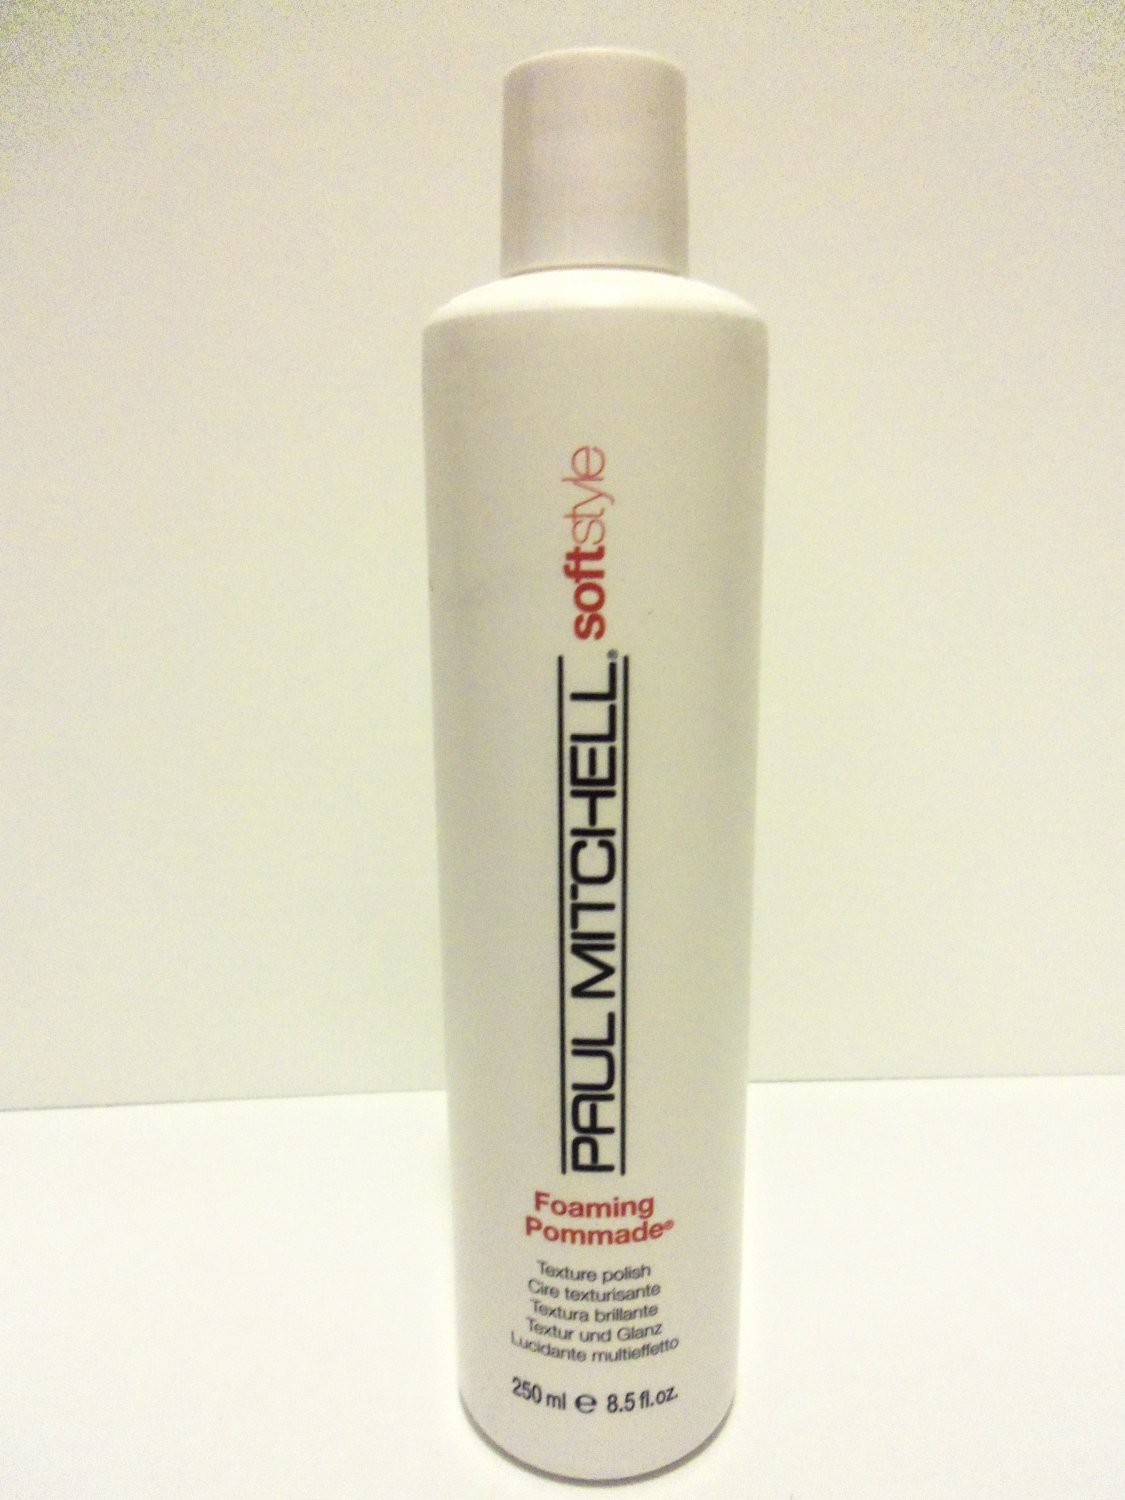 Paul Mitchell Softstyle Foaming Pommade 8.5fl oz